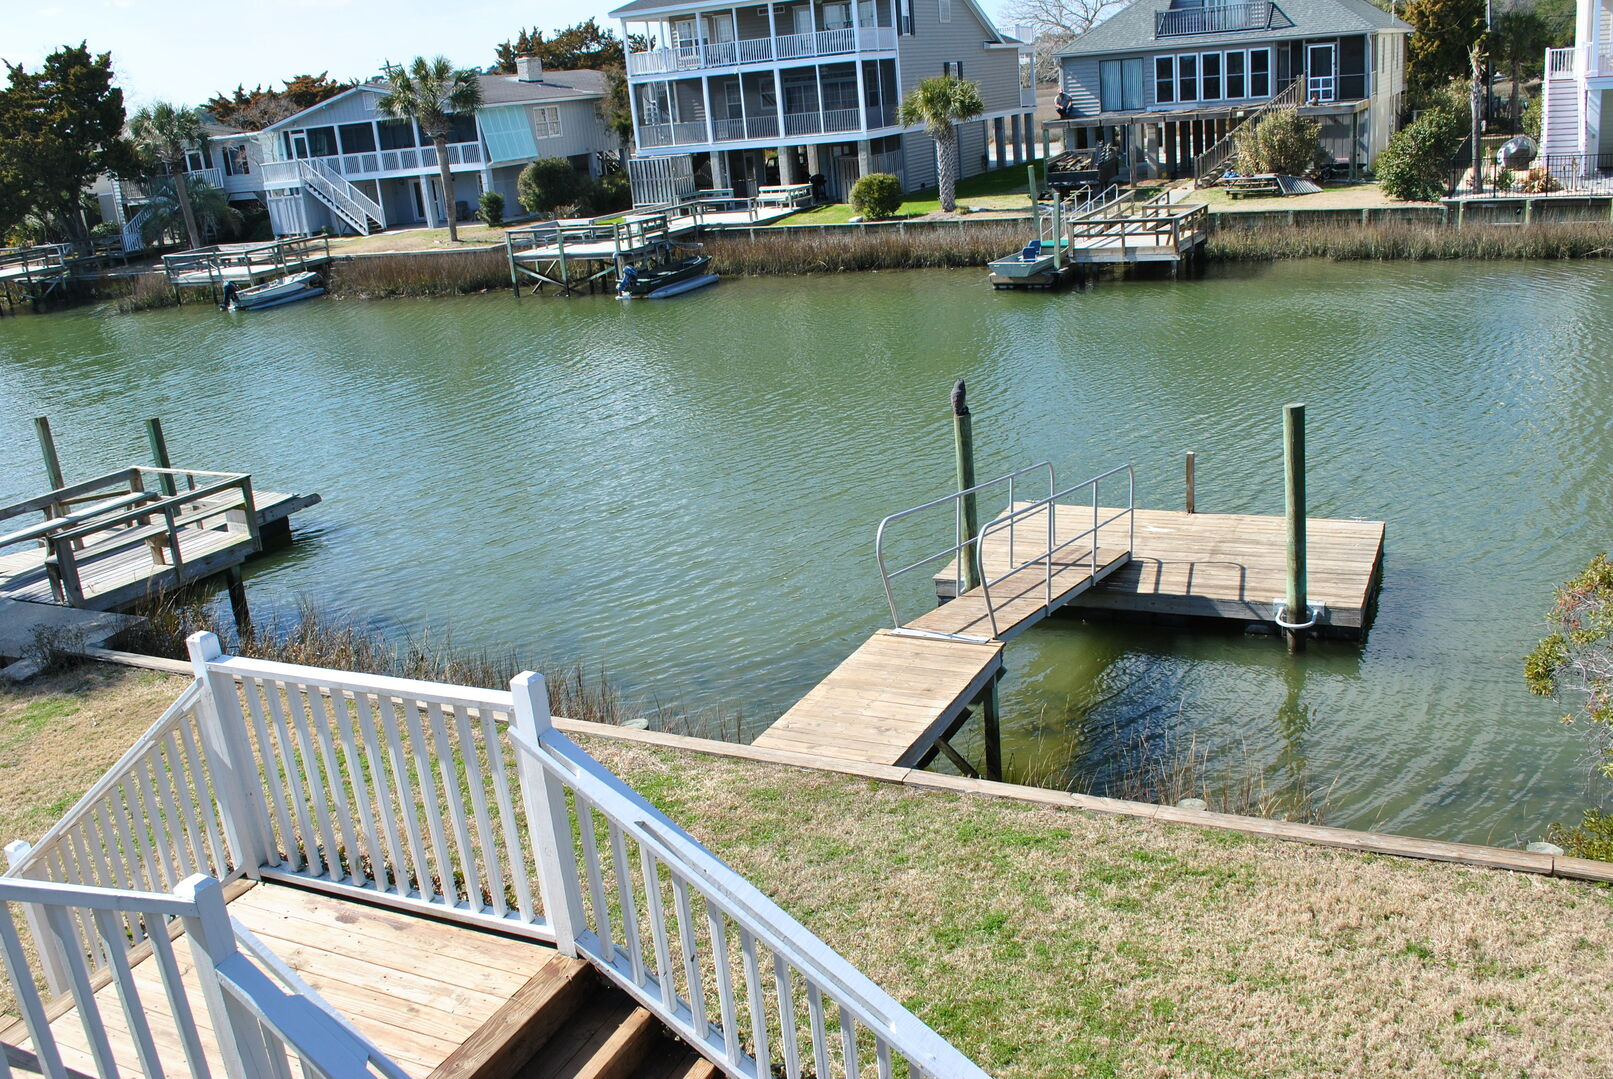 Floating Dock on the Canal